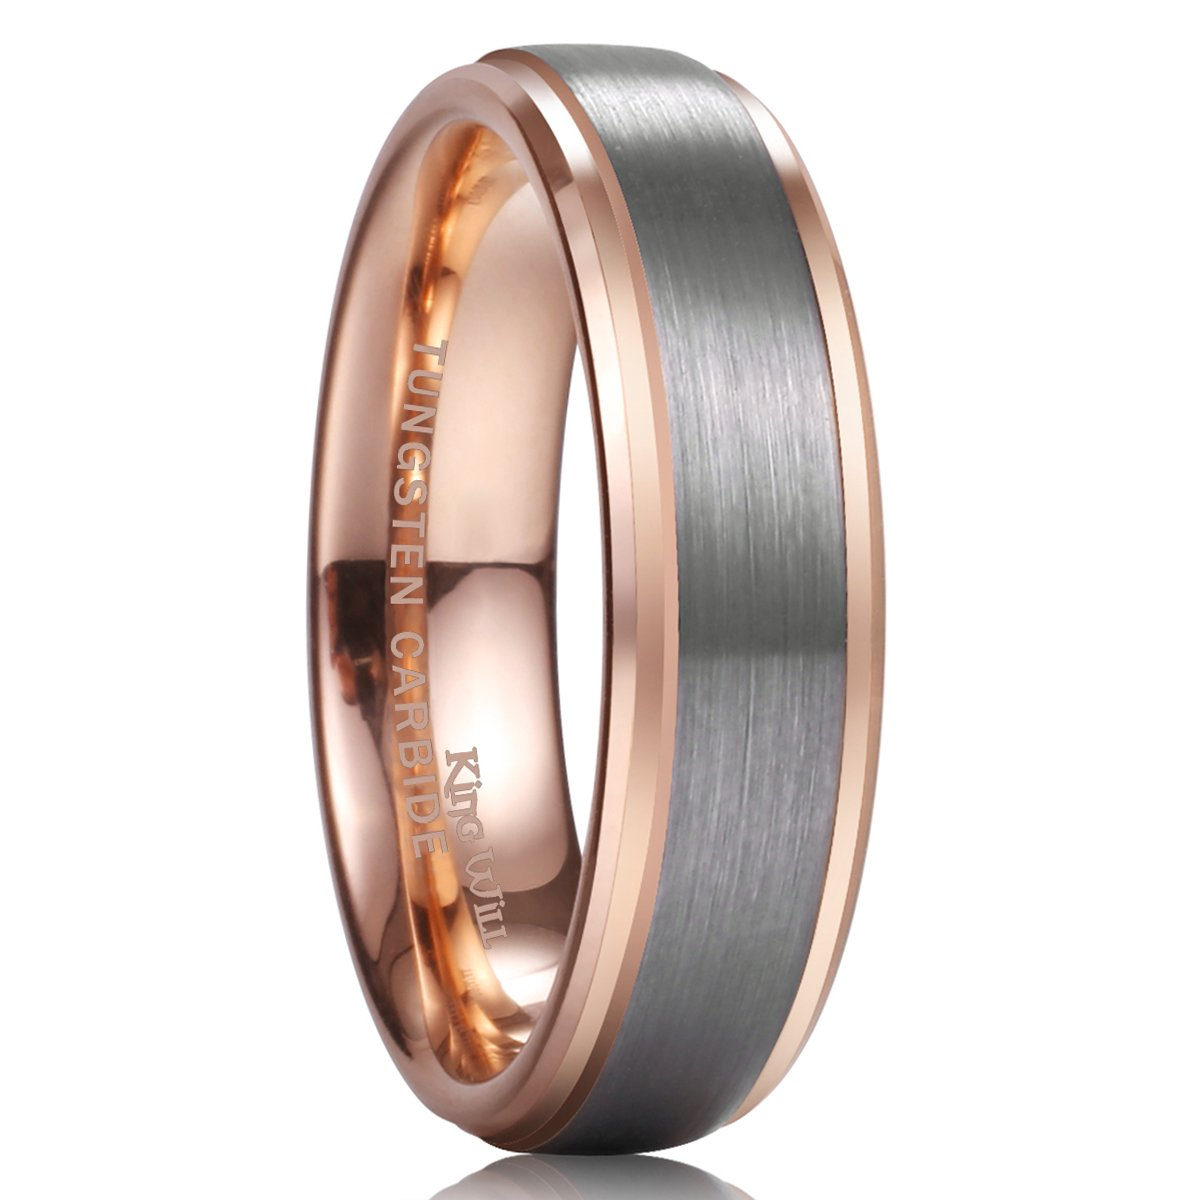 King Will Duo Unisex 6mm 18k Rose Gold Plated Tungsten Carbide Ring Two Tone Wedding Band 8.5